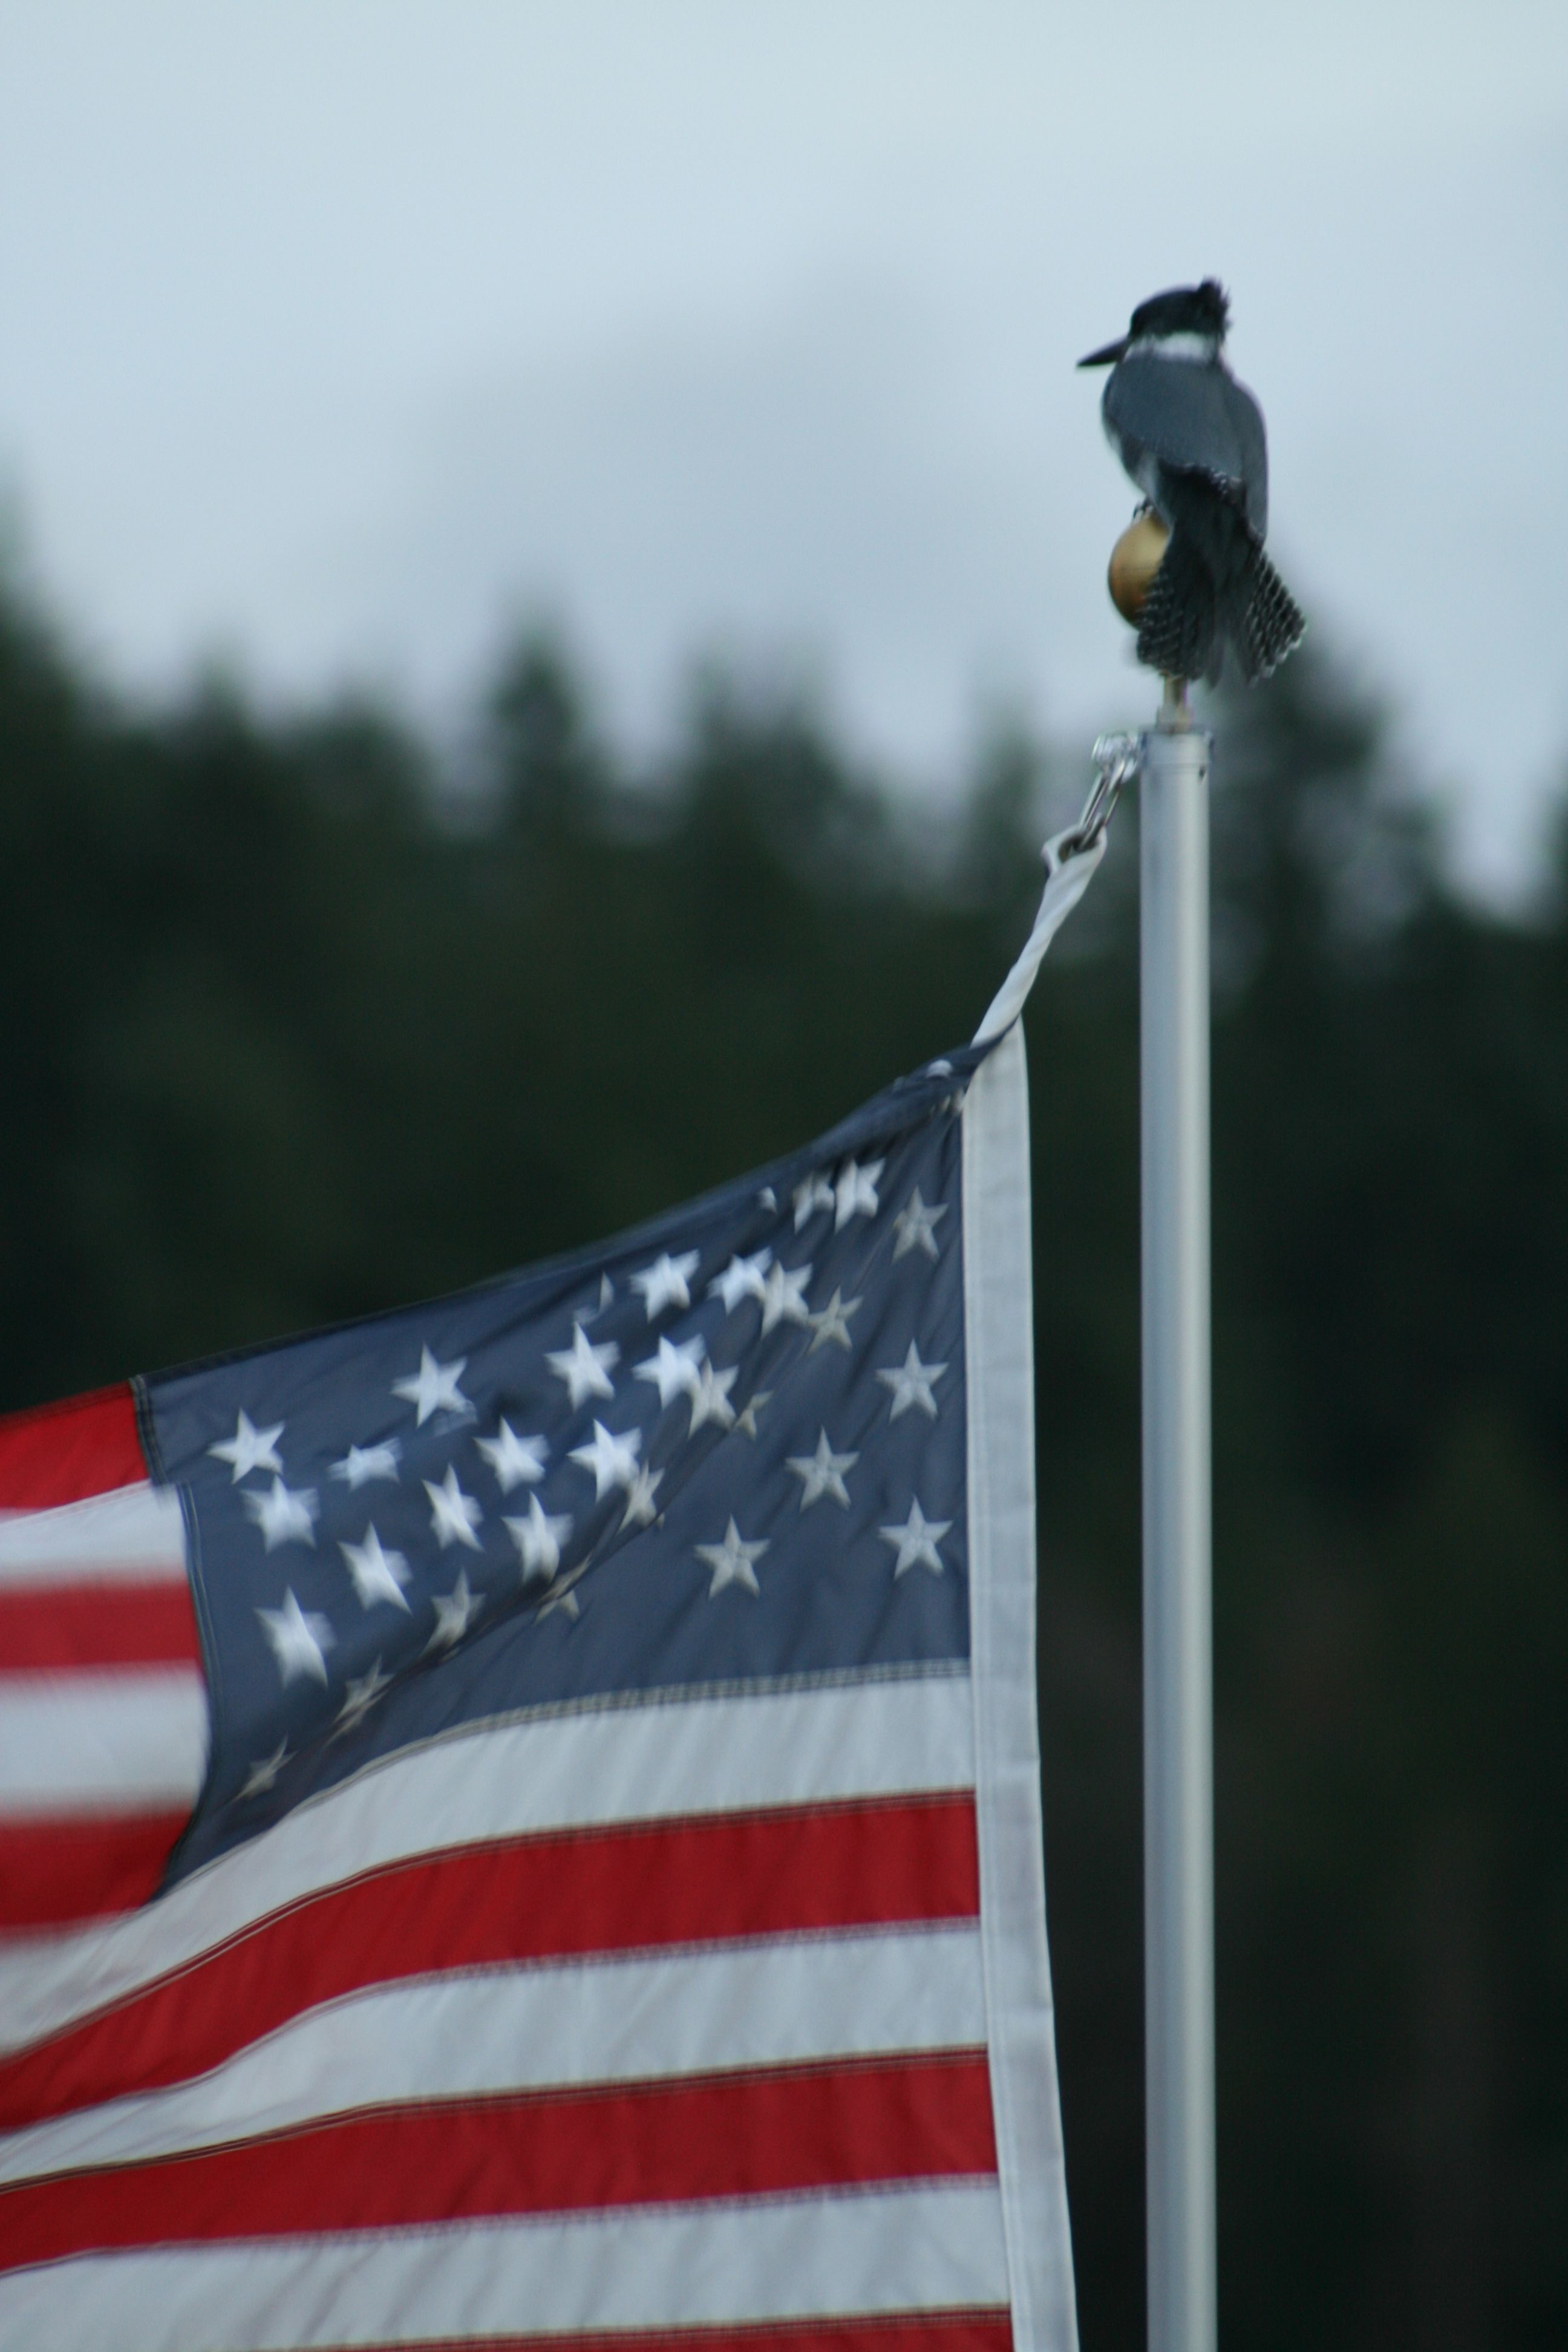 A common visitor to our flag pole